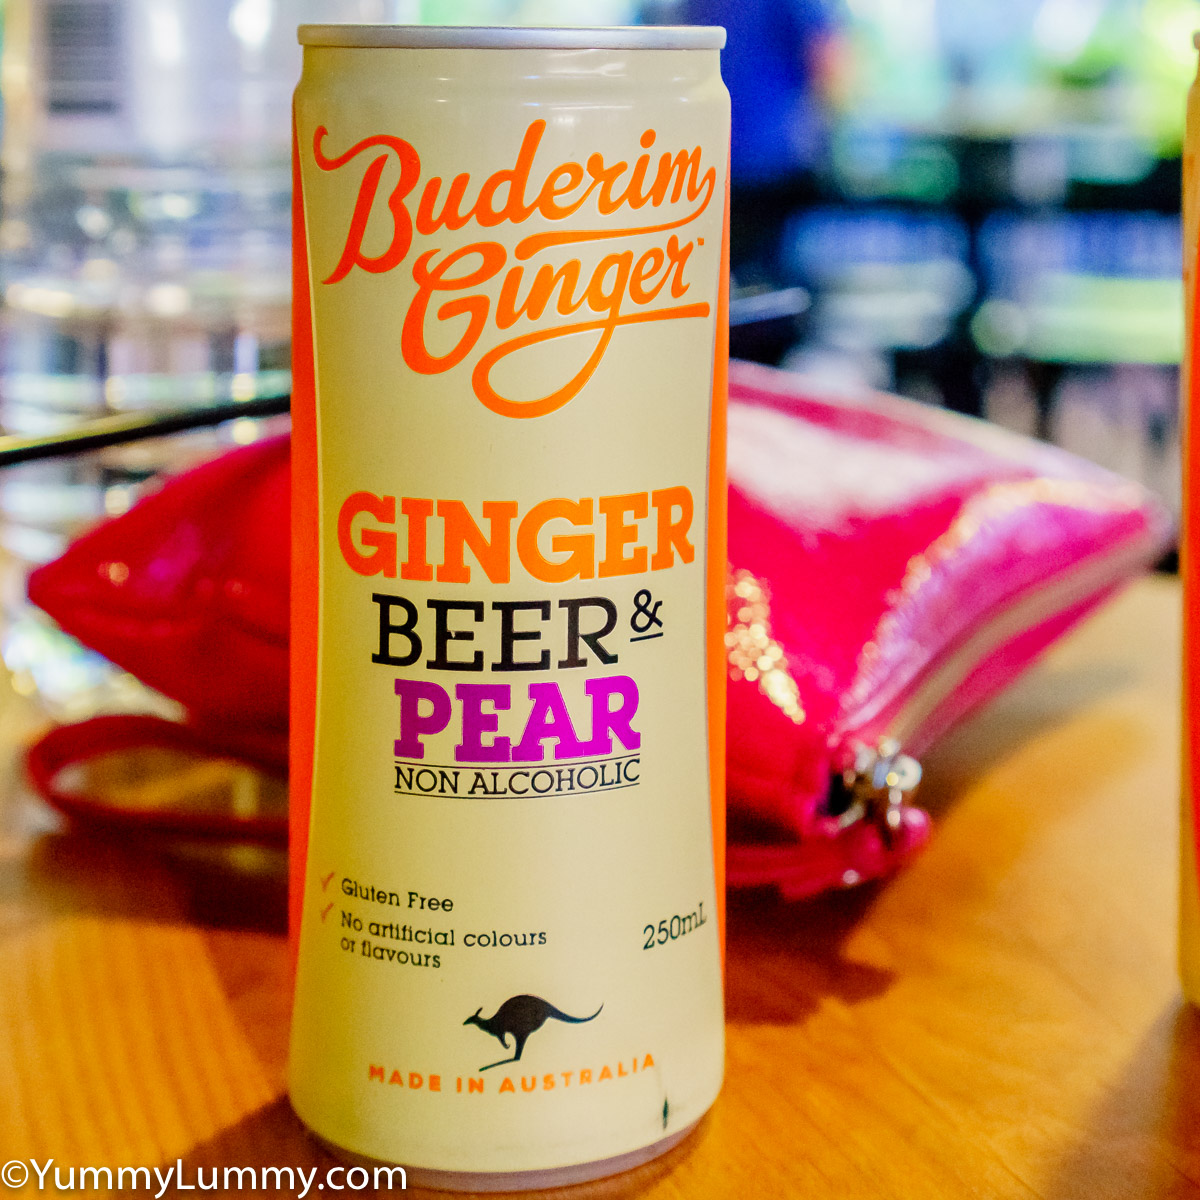 A can of Buderim ginger beer and pear